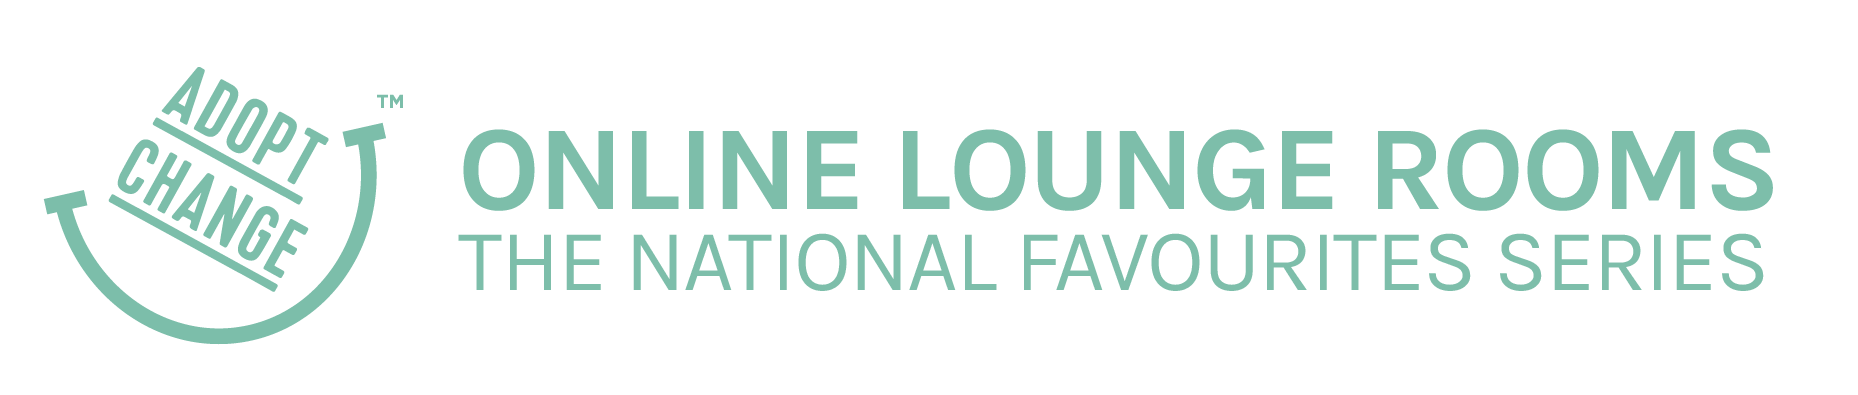 Adopt Change Online Lounge Rooms: The National Favourites Series